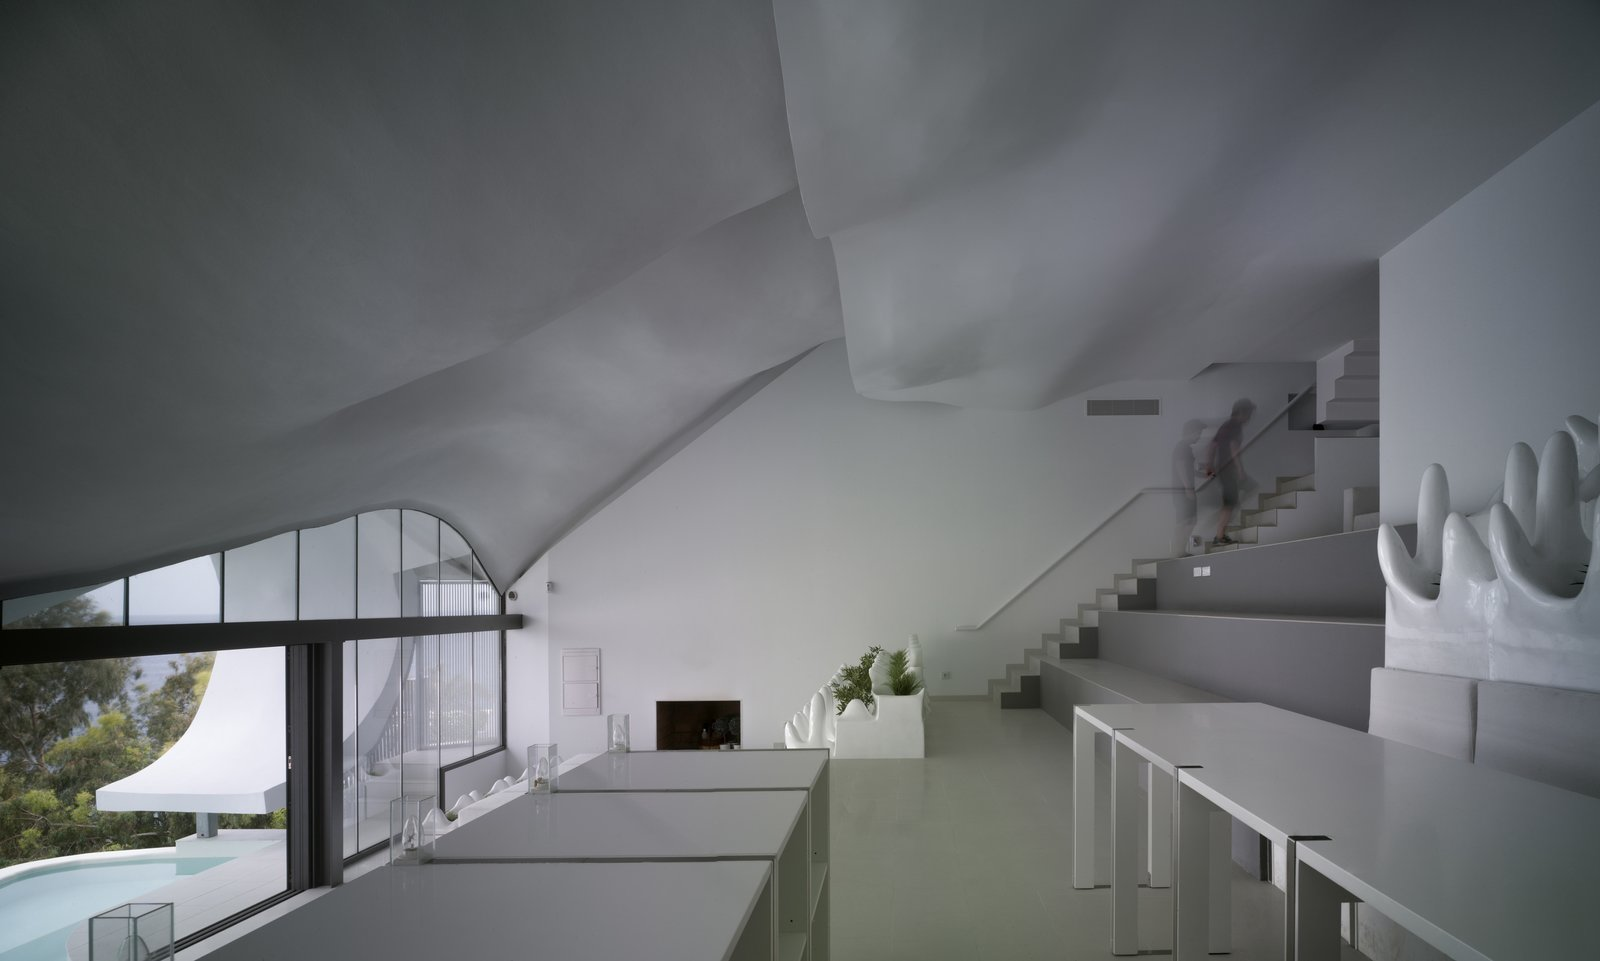 The reinforced concrete shell requires no columns, leaving the 47.5-foot-wide interior totally open. The living room doubles as a stage and the terraced seating can accommodate 70. A large sliding glass door separates the living room from the pool just outside.  Cliff House by Zachary Edelson